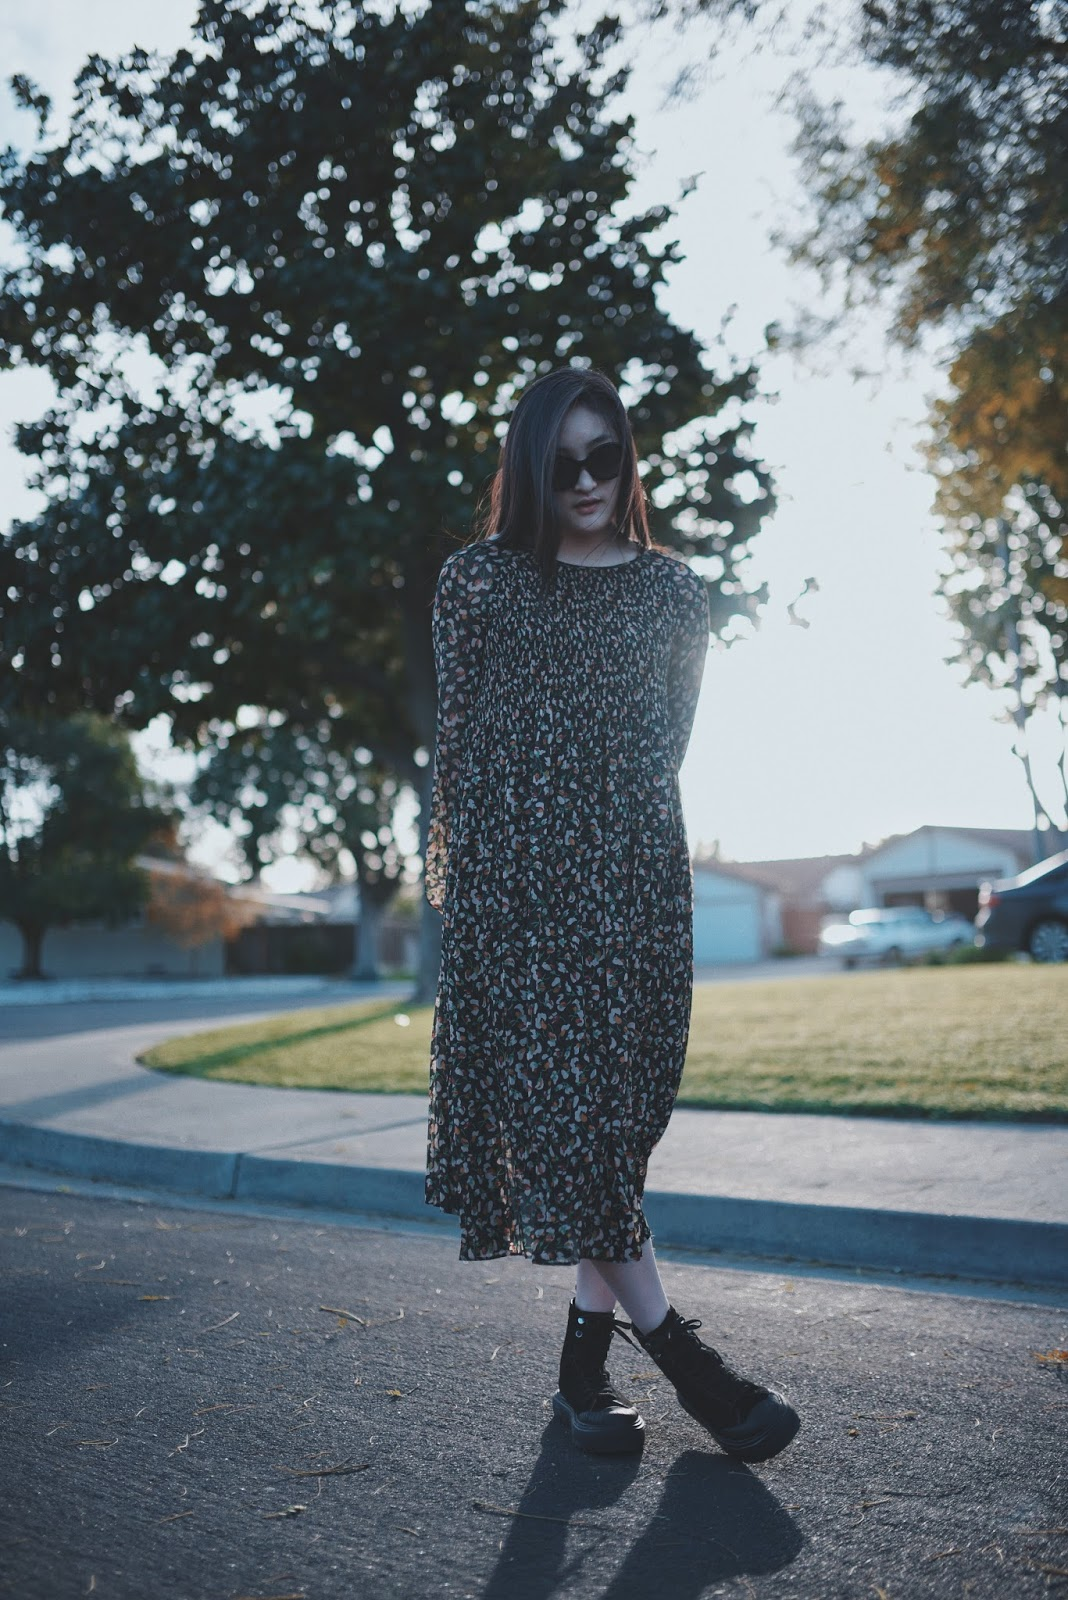 FLORAL DRESS AND BLACK BOOTS | AESTE BLANC